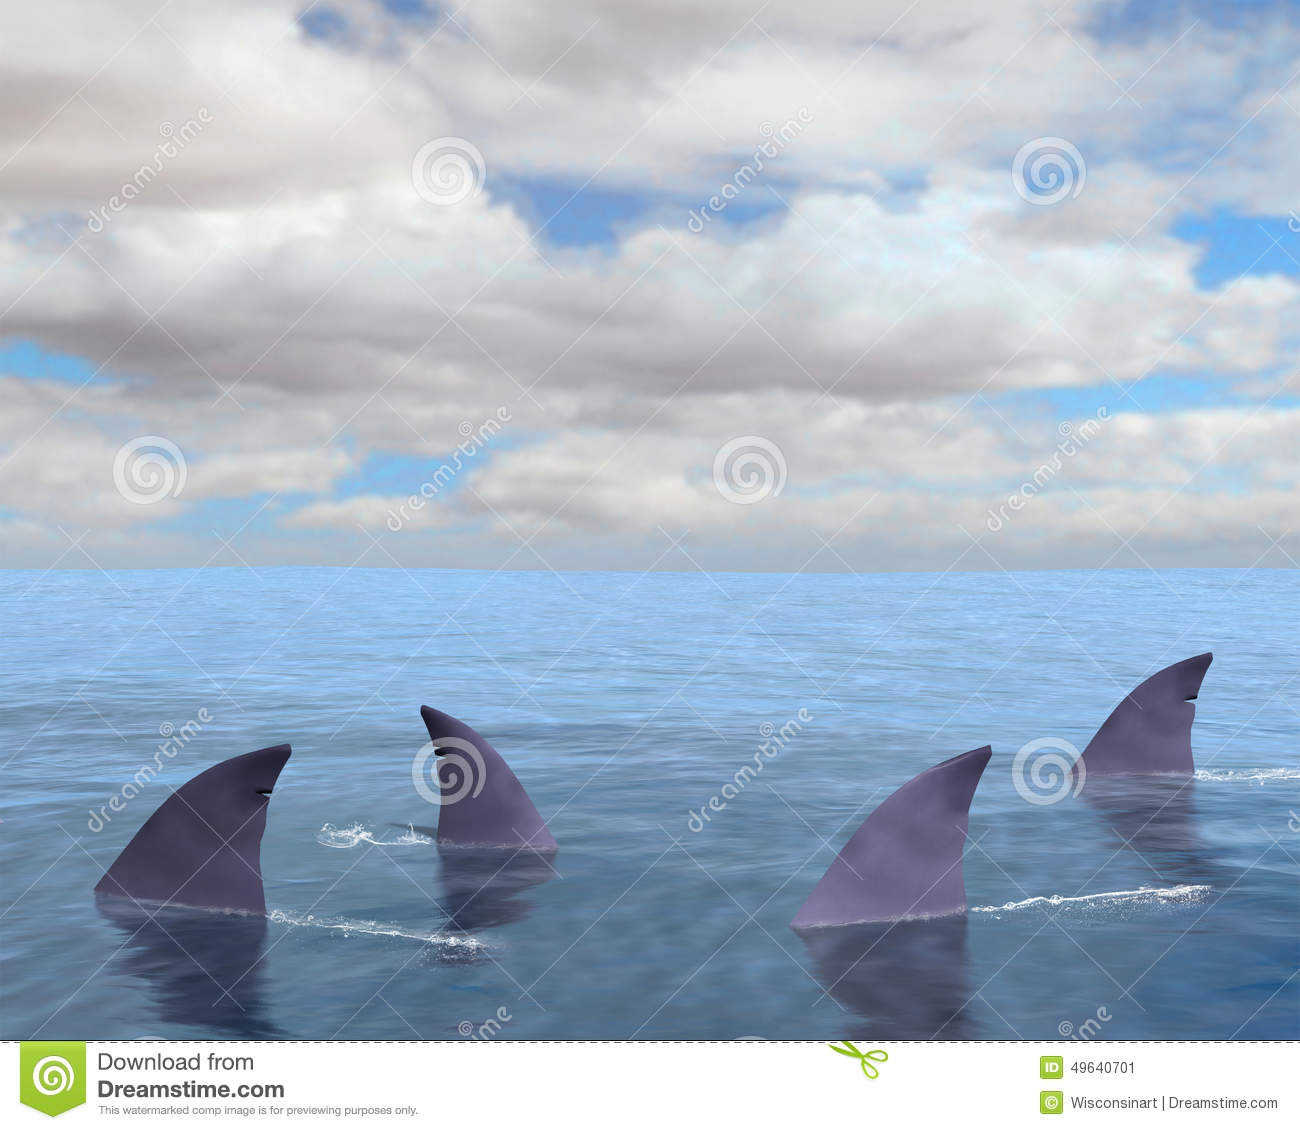 Background Illustration Of Shark Fins In The Sea Or Ocean  Sharks Are